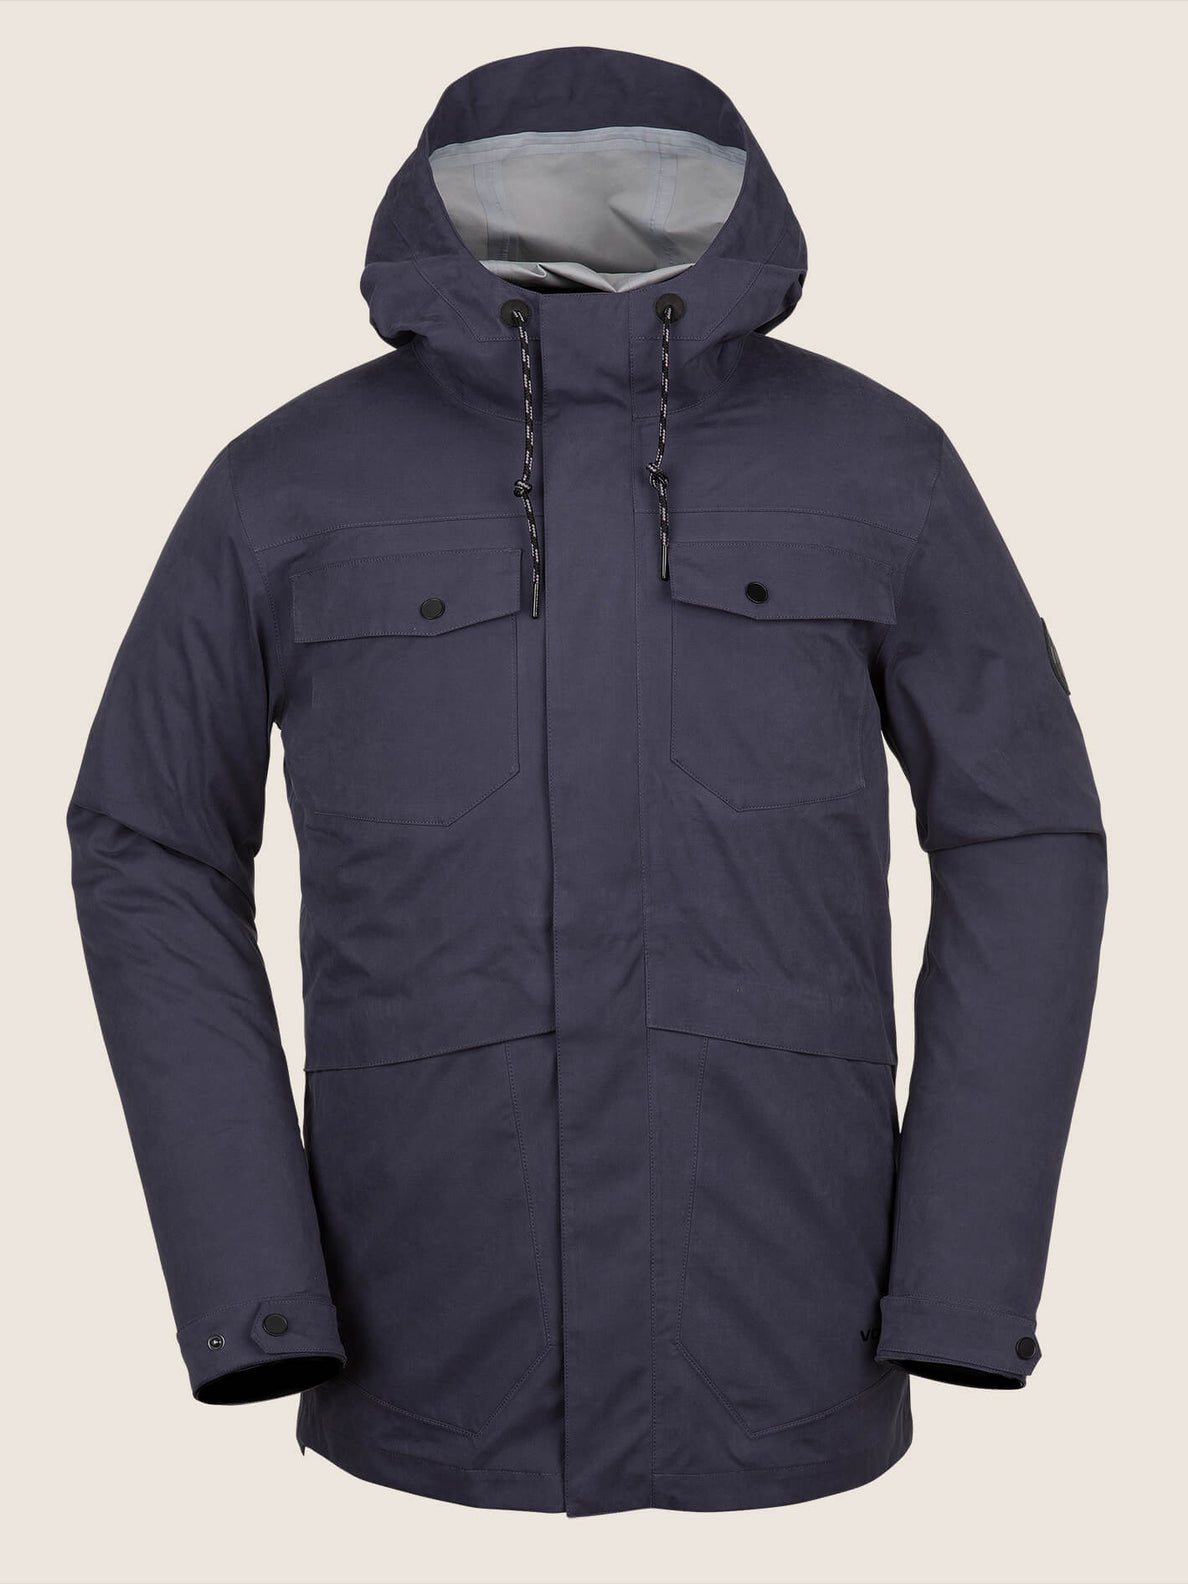 V.co 3L Rain Jacket In Vintage Navy, Front View